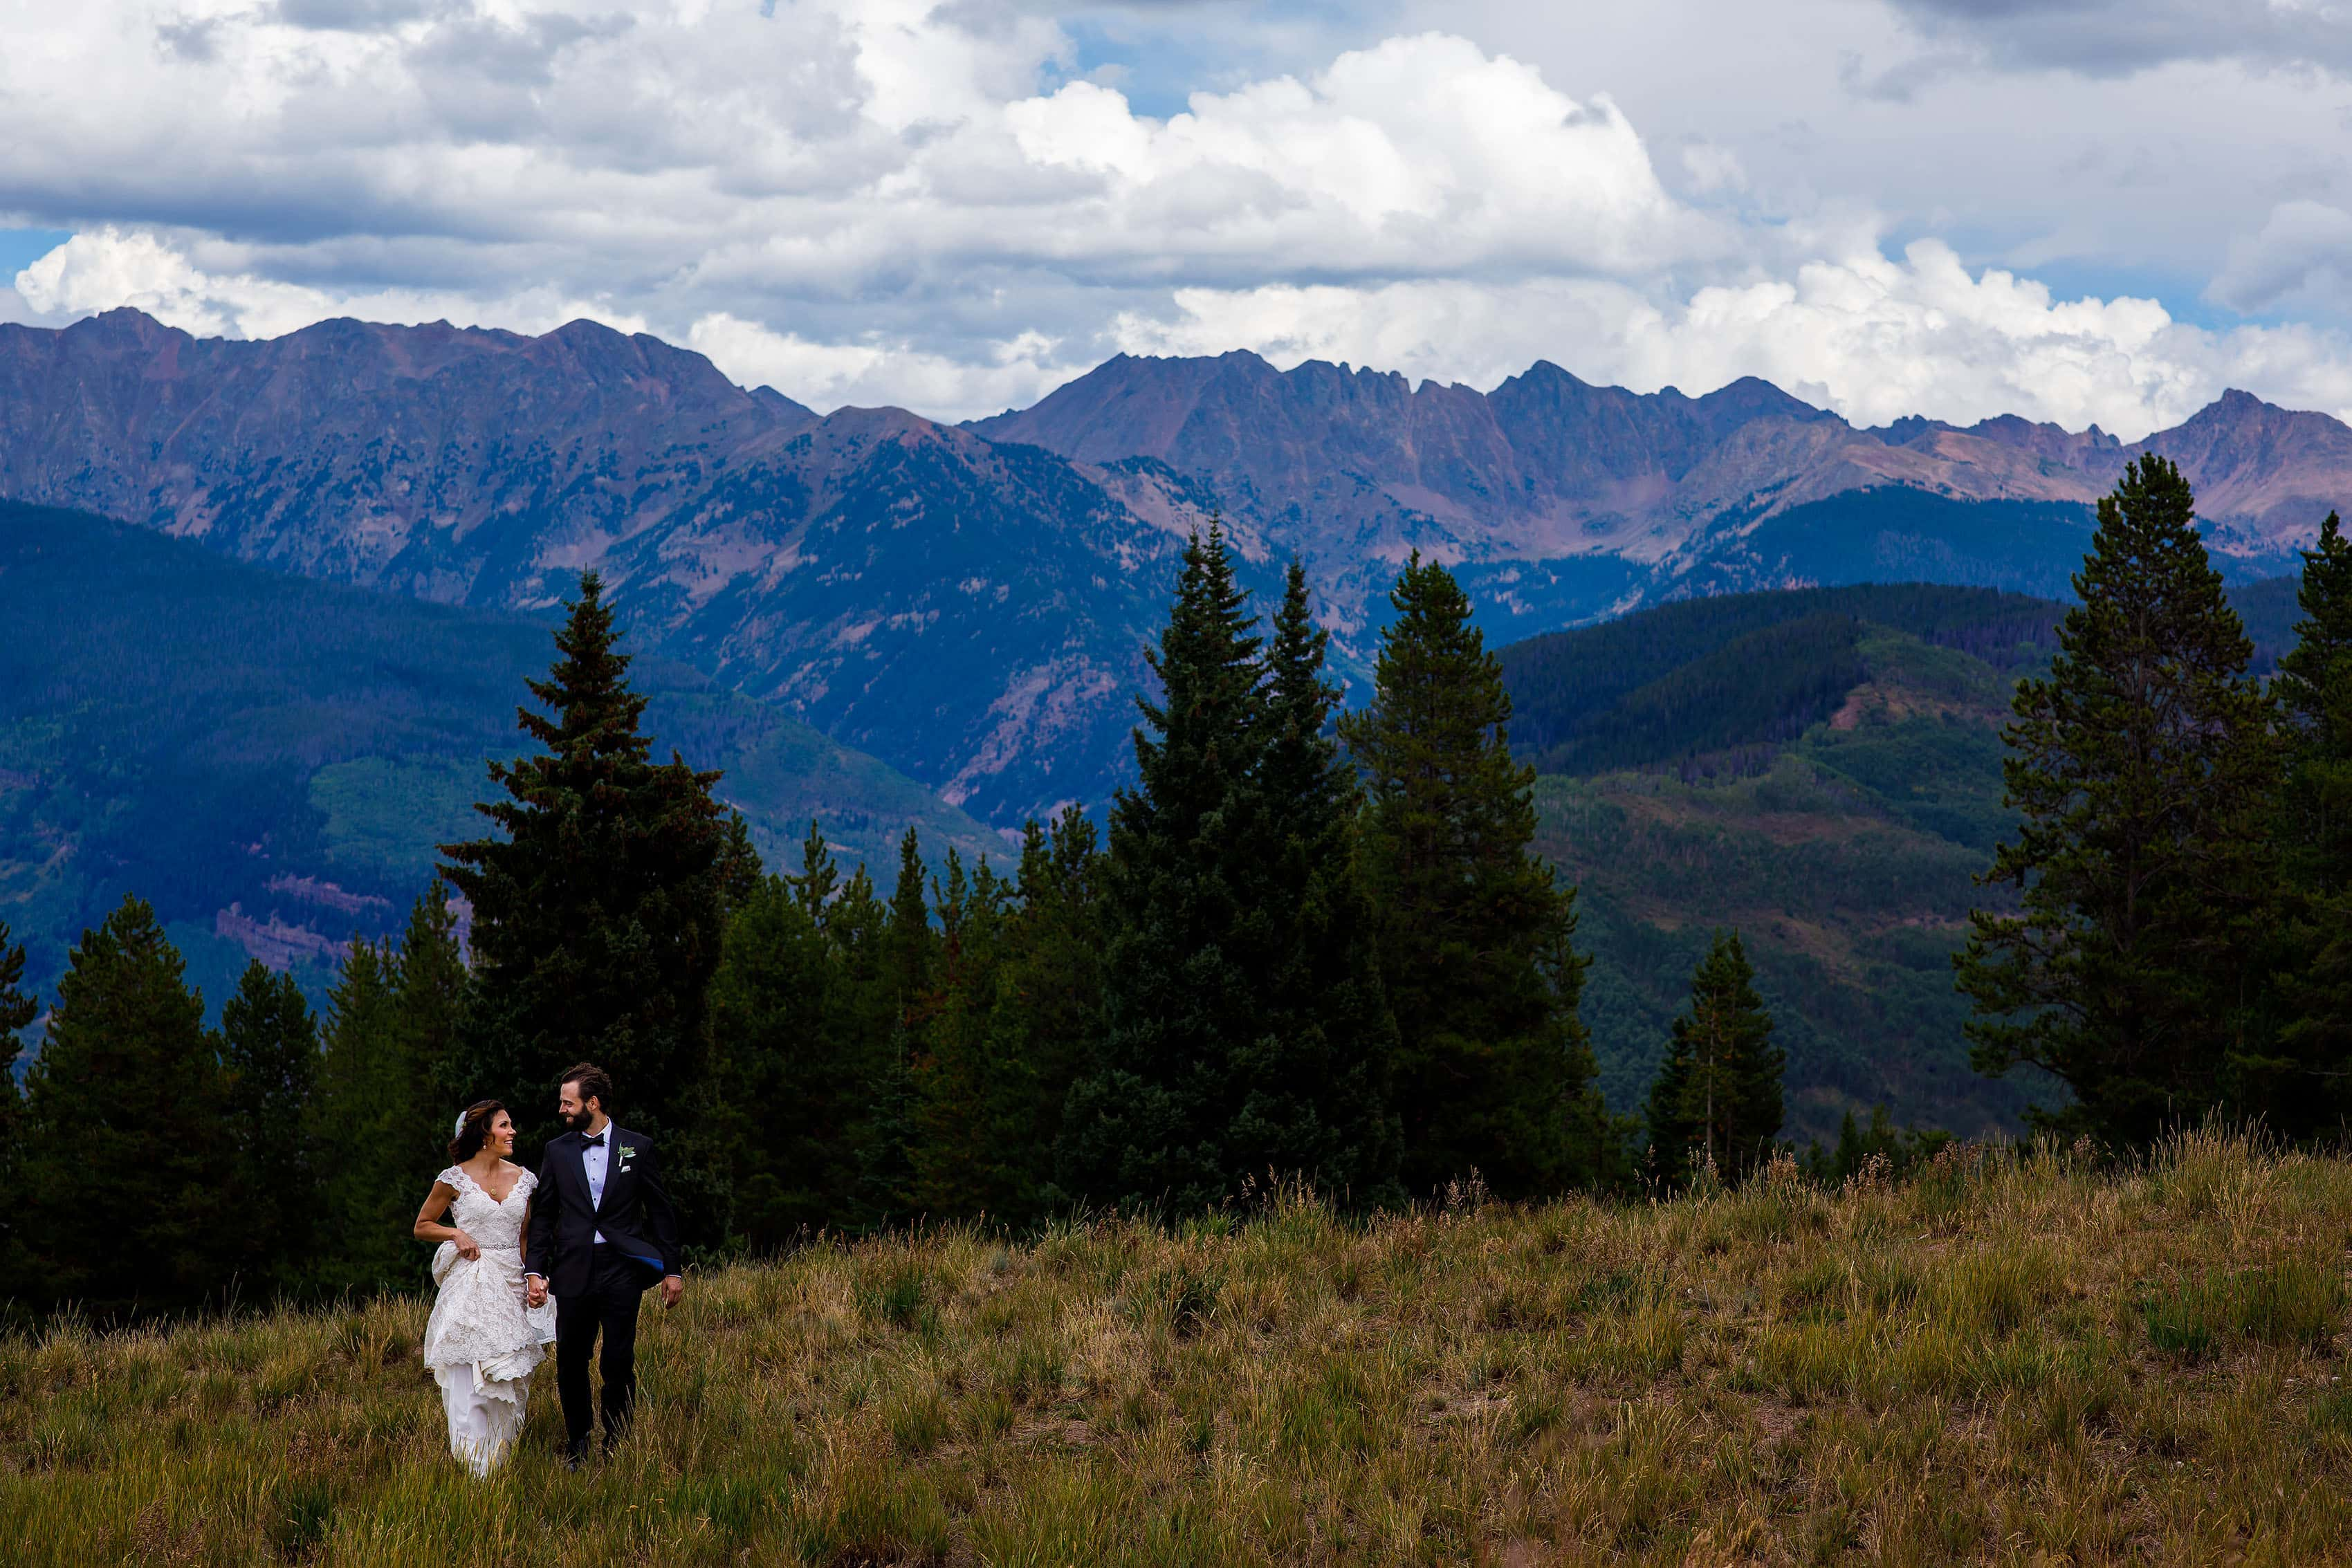 The bride and groom walk together atop Vail mountain on their wedding day